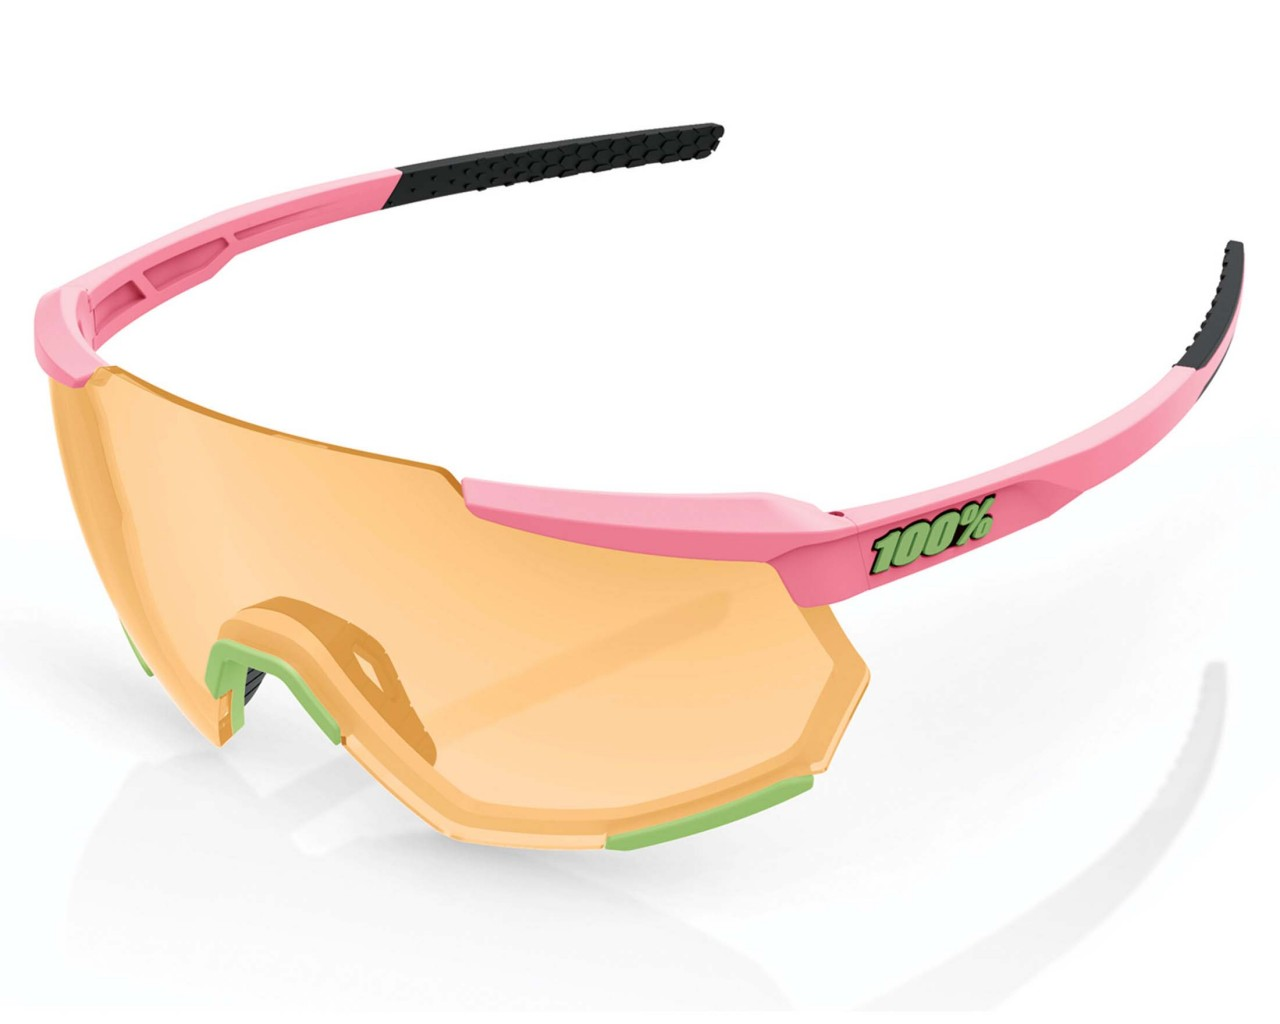 100% Racetrap Smoke Lens - Sports Sunglasses | matte washed out neon pink